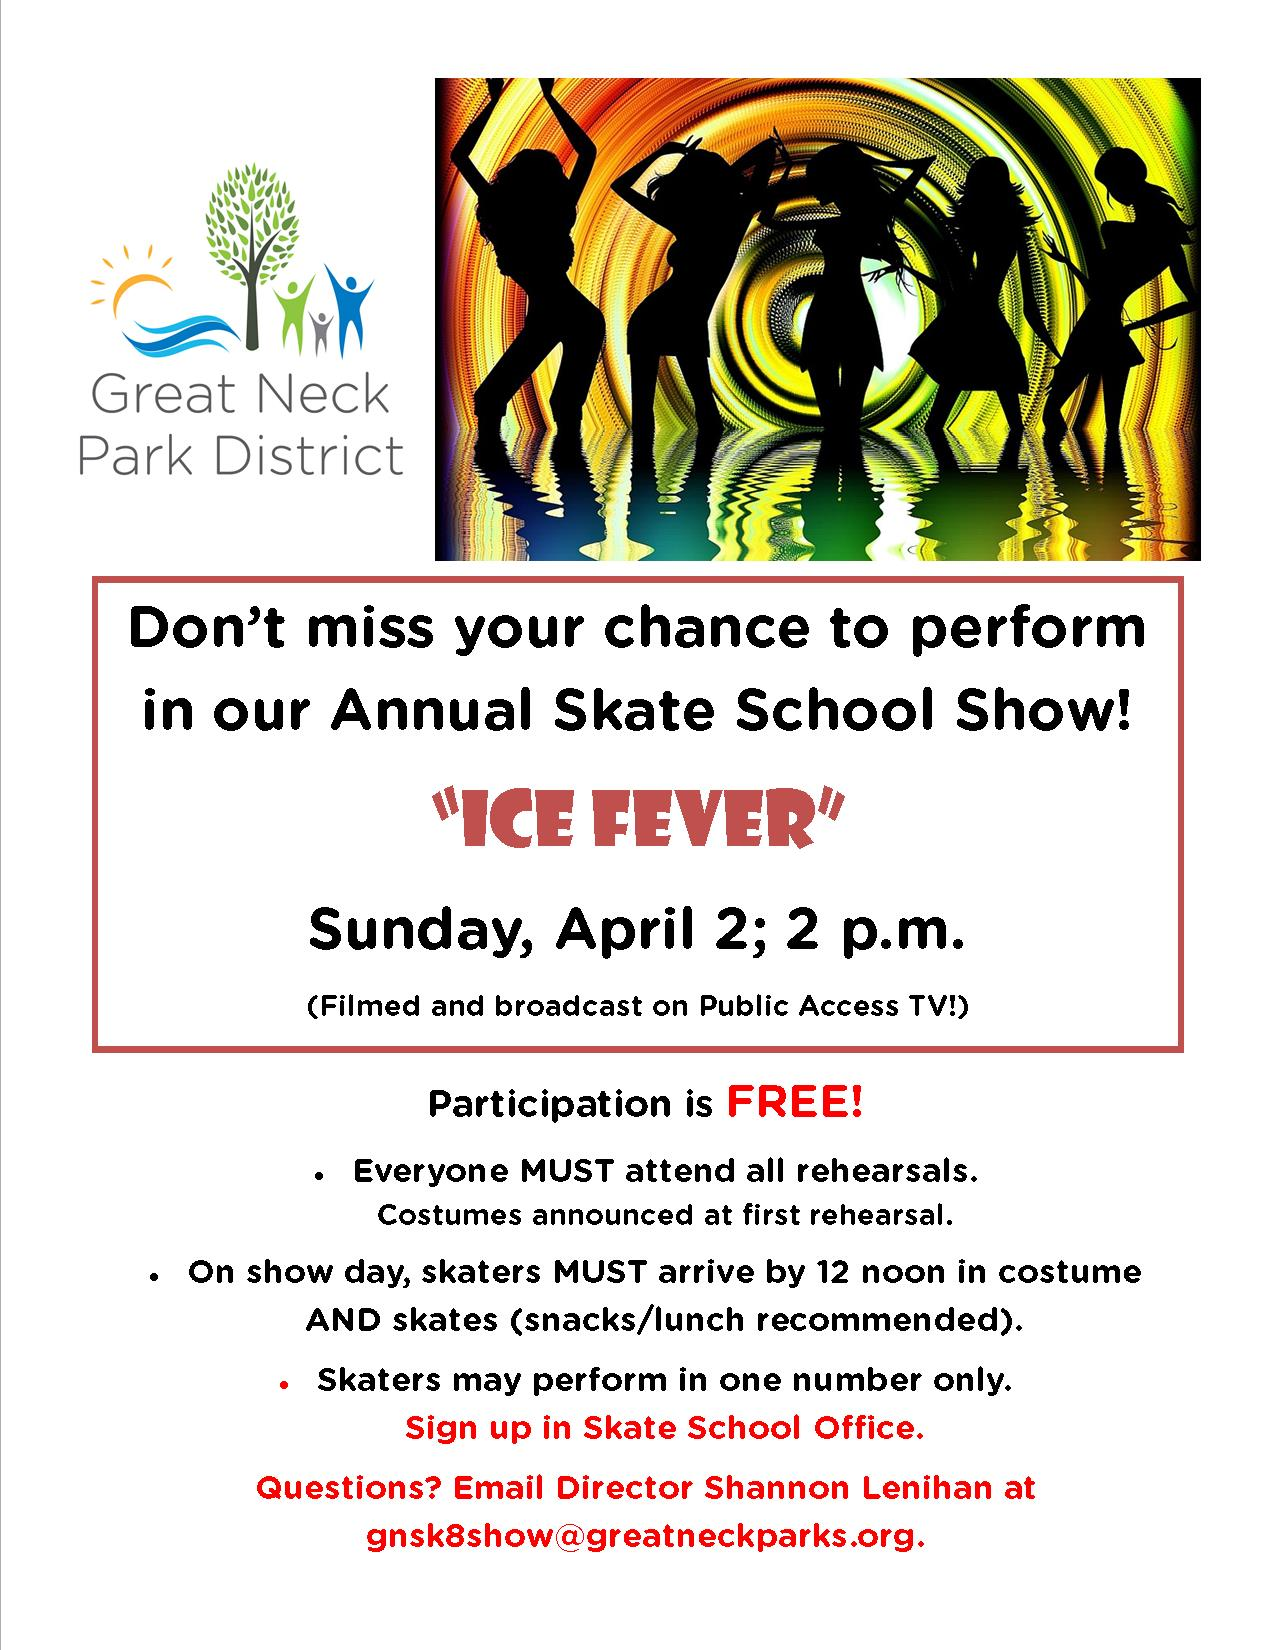 2017 Annual Skate School Show Ice Fever flyer